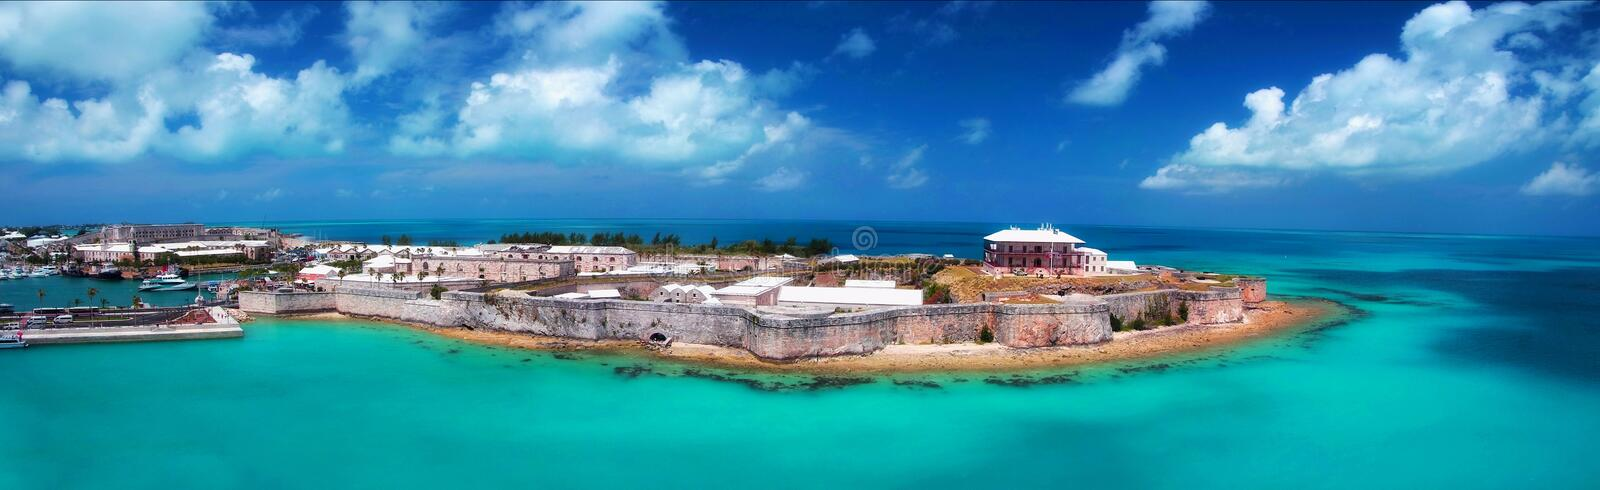 Kings wharf, Bermuda. Panoramic view of Bermuda Maritime Museum & Commissioner's House.It is the largest museum in Bermuda and is located within the grounds of stock photo